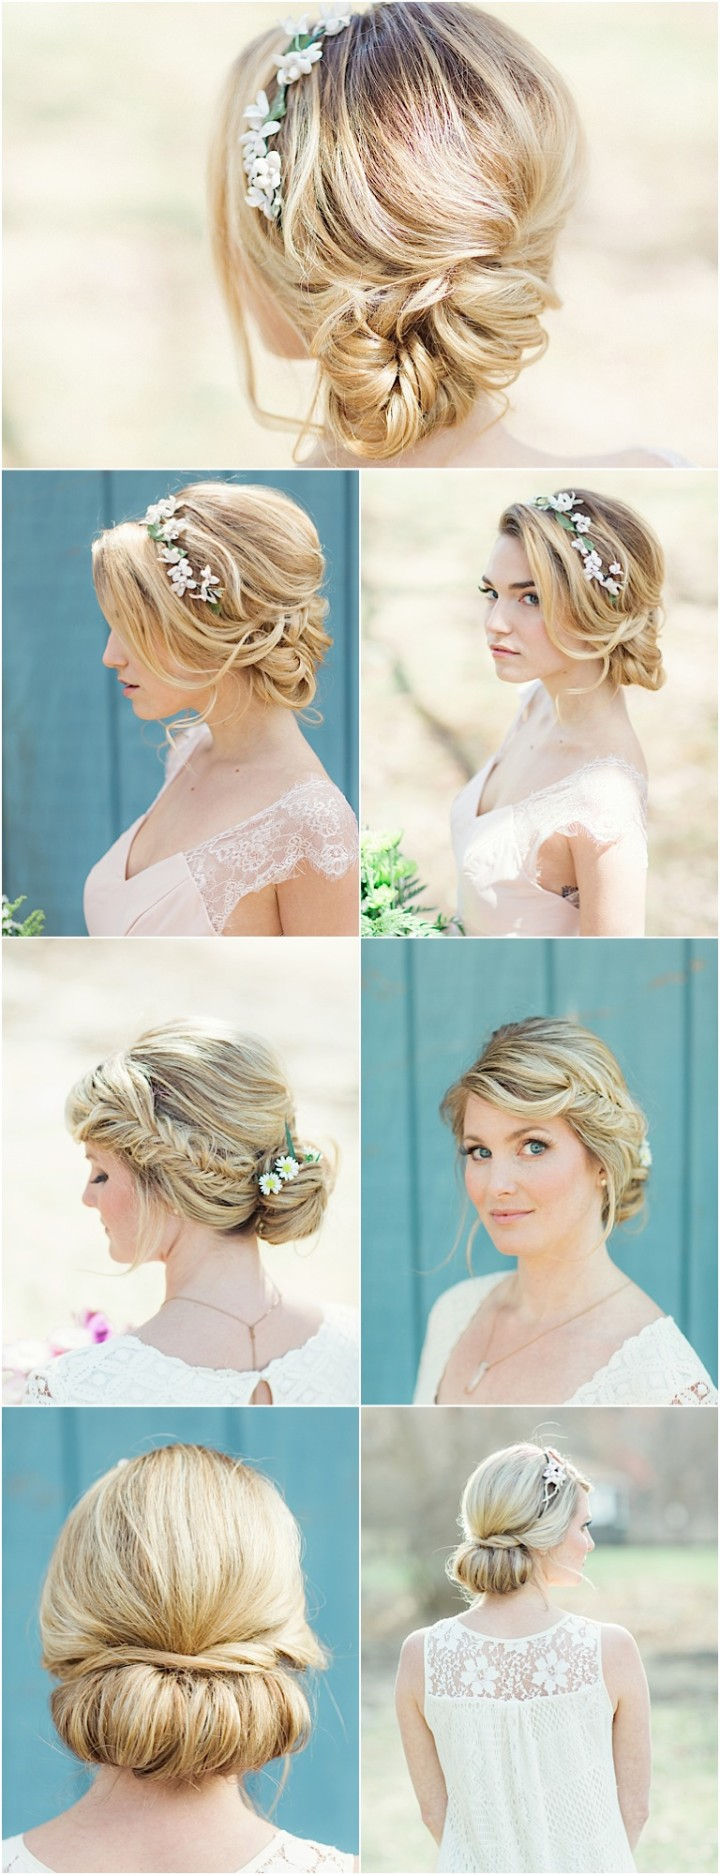 wedding-hairstyles-50-05312015